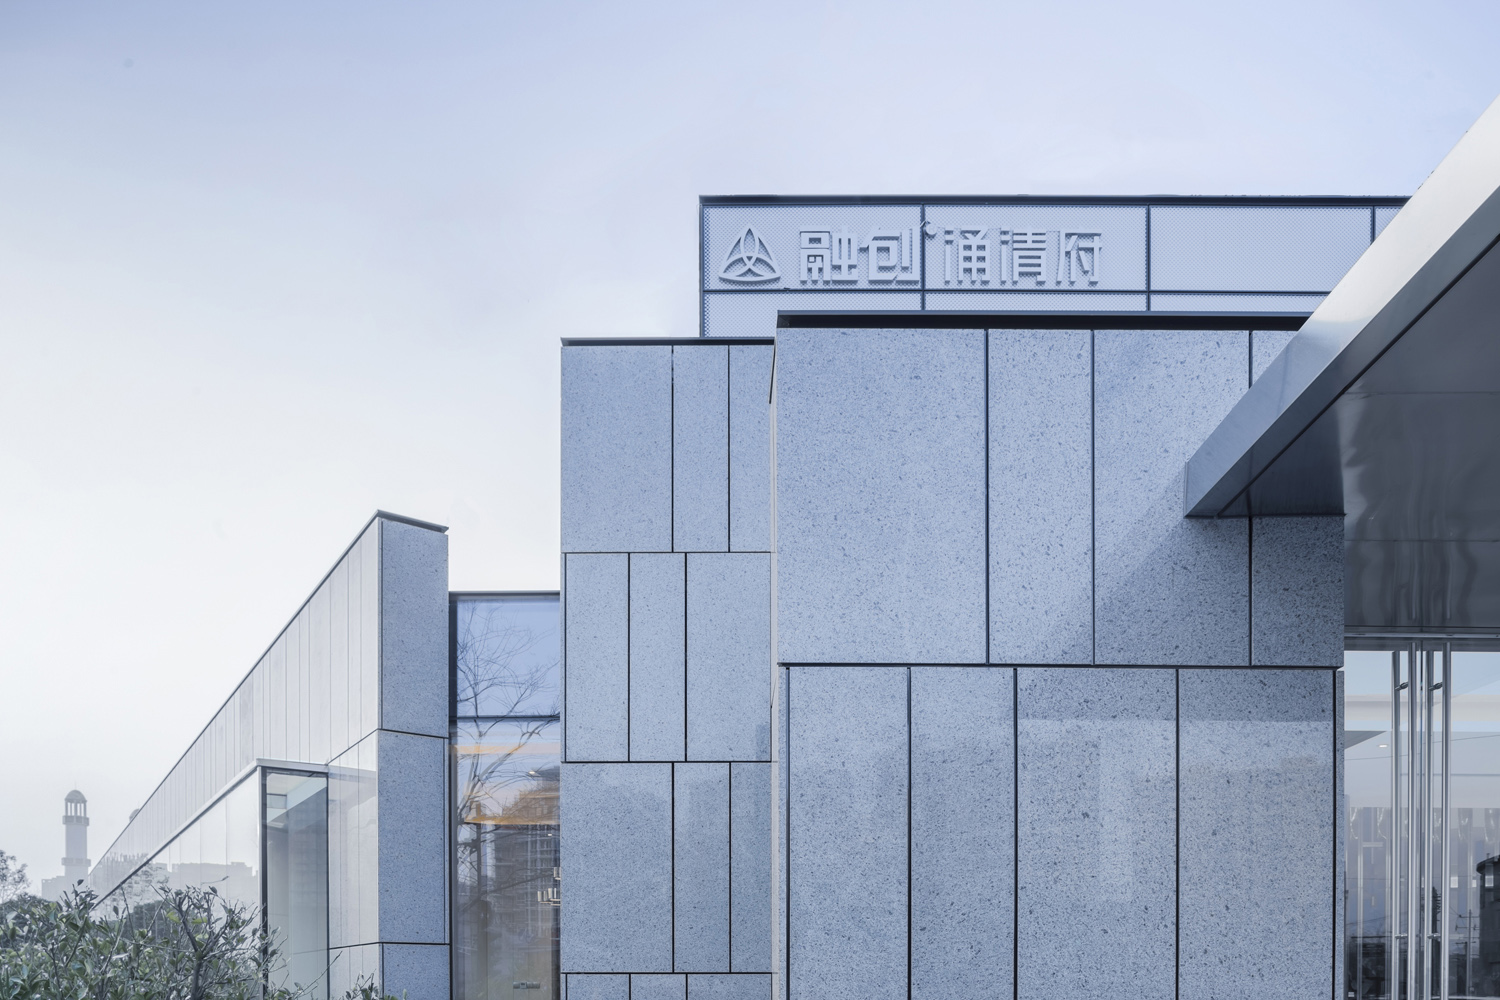 purity of the façade, rhythm and ductility of the wall Huang Jinrong